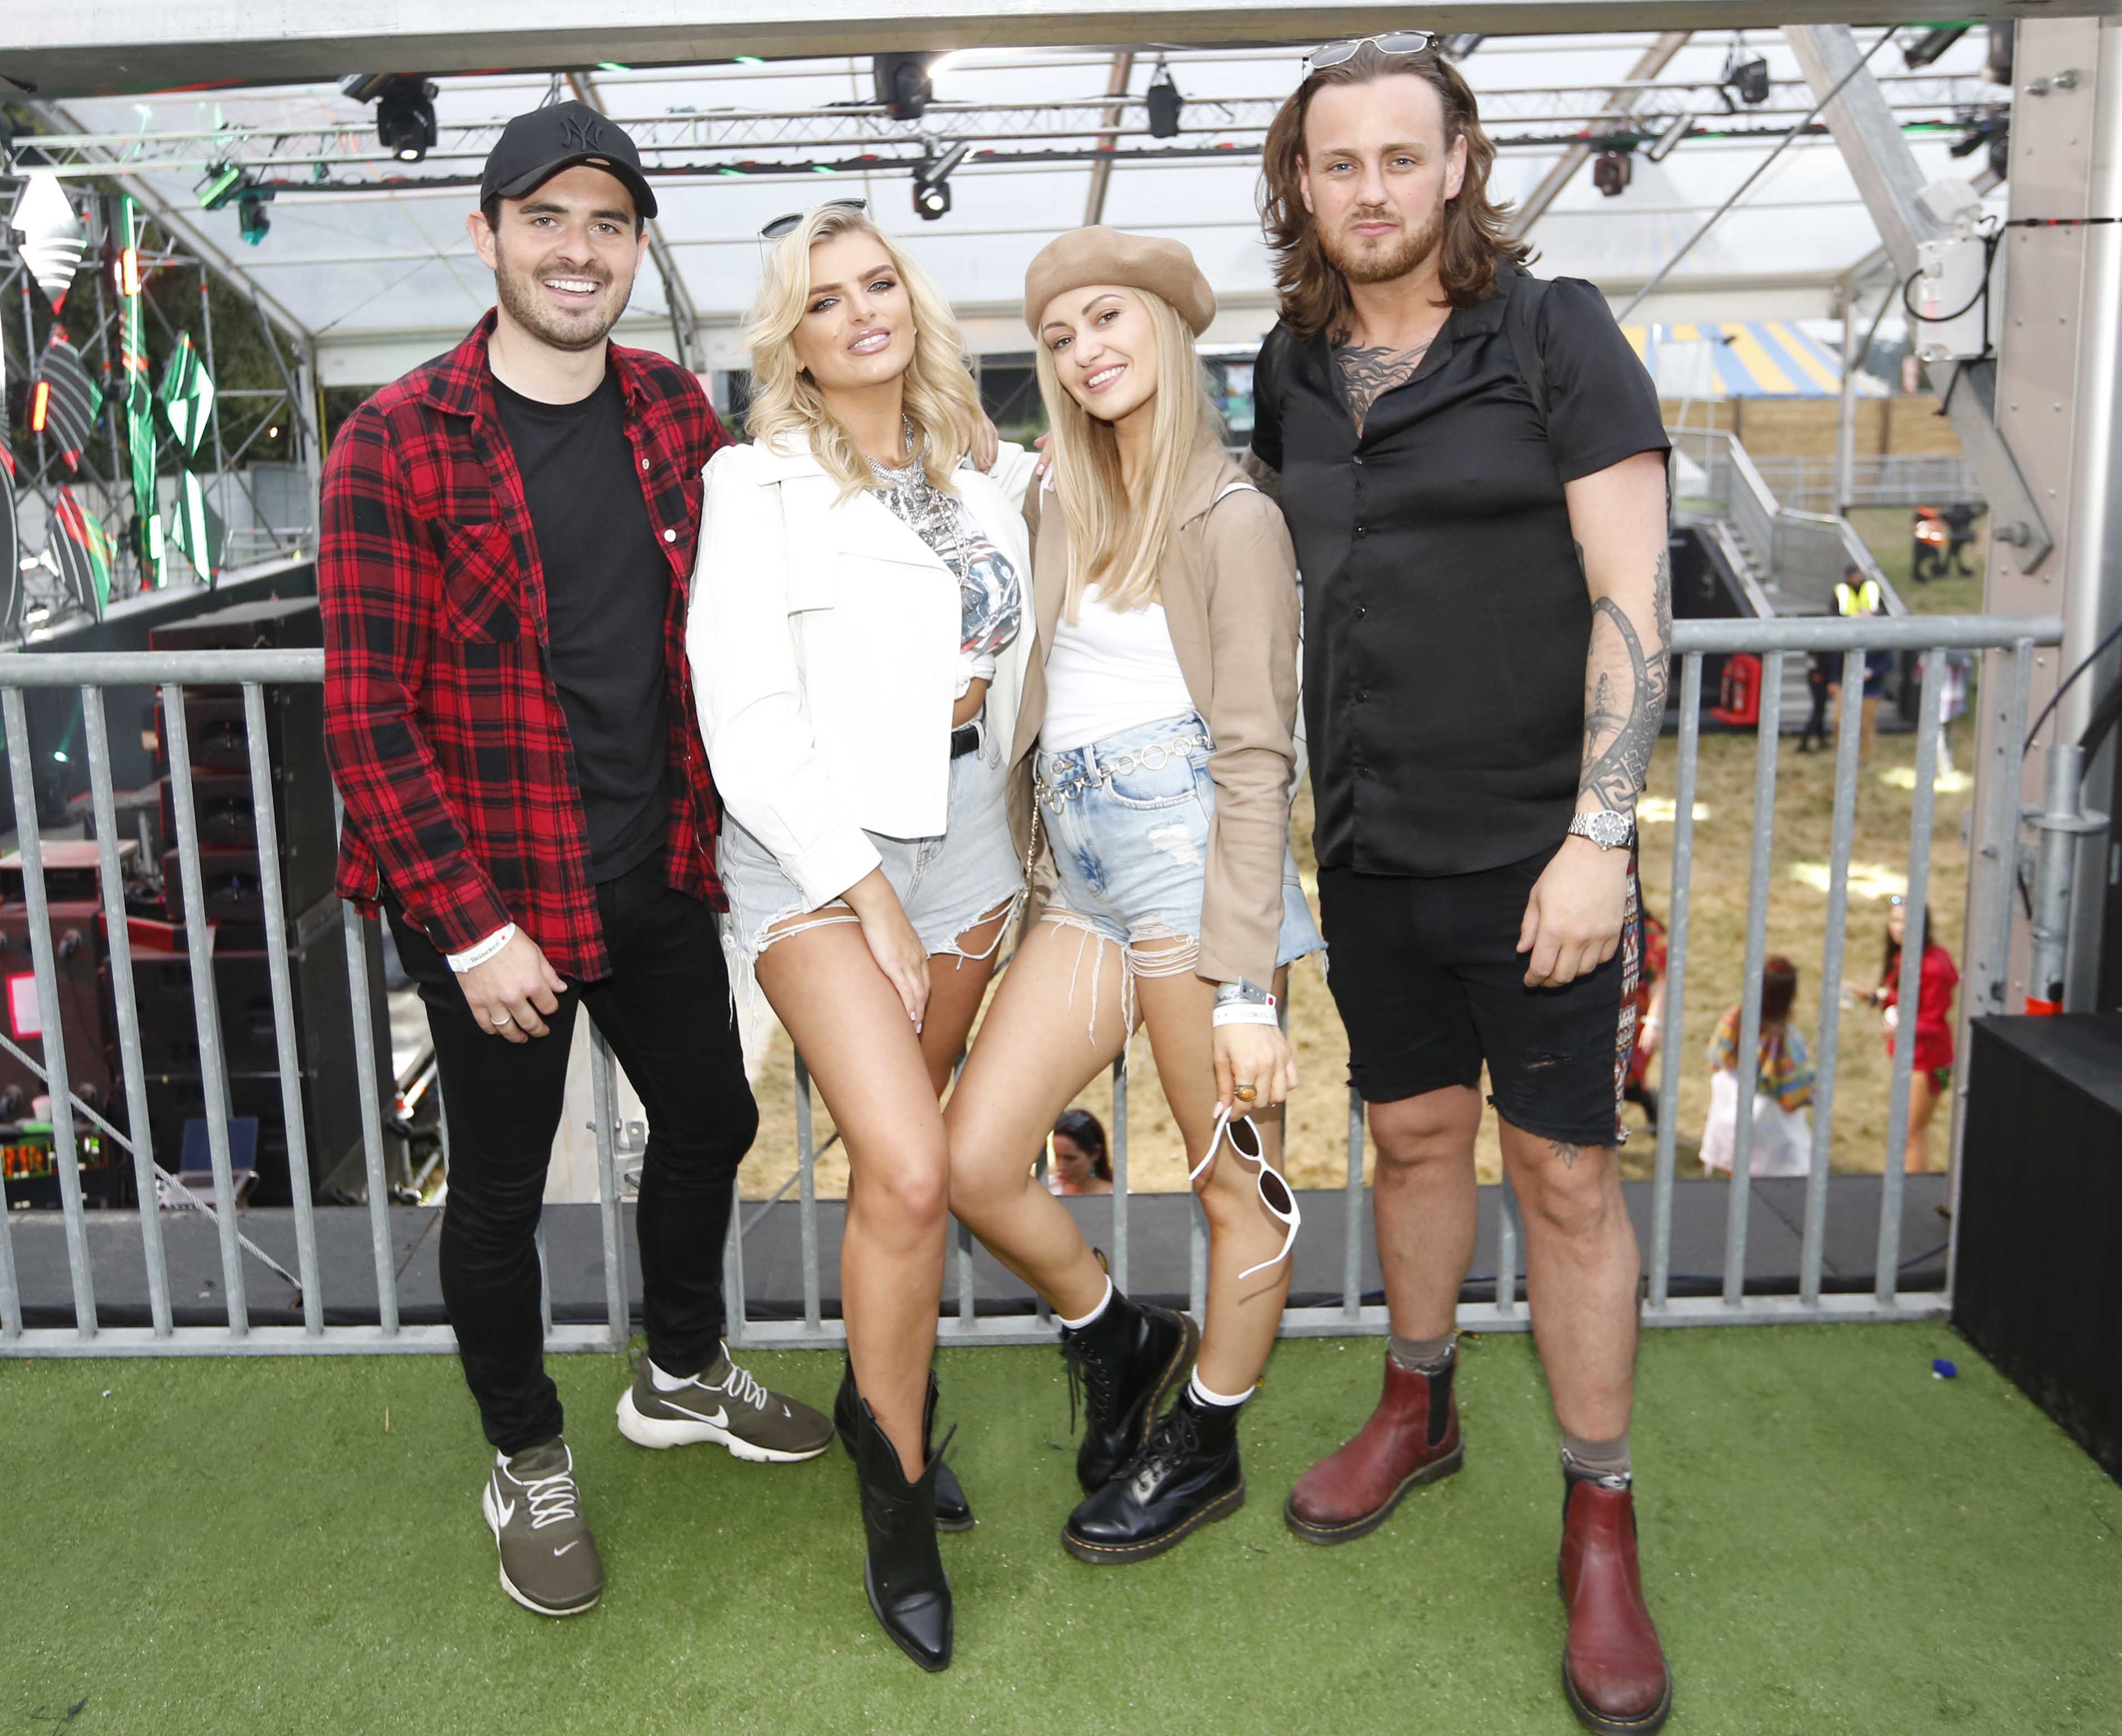 NO REPRO FEE 30/08/2019 Heineken Live Your Music Stage at Electric Picnic 2019. Pictured are (LtoR) Oisin Boland Ashley Kehoe & Fiona Killion Chris Mellon at the Heineken Live Your Music Stage at Electric Picnic 2019. This year's area is an enormous structure on two levels, with a glass roof that will keep festival-goers dry but let them dance beneath the sun and stars! The immersive and interactive lightshow has been reimagined for 2019 which, combined with the state-of-the-art soundsystem, make Live Your Music the most impressive festival stage in the country. Photo: Sasko Lazarov/Phorocall Ireland